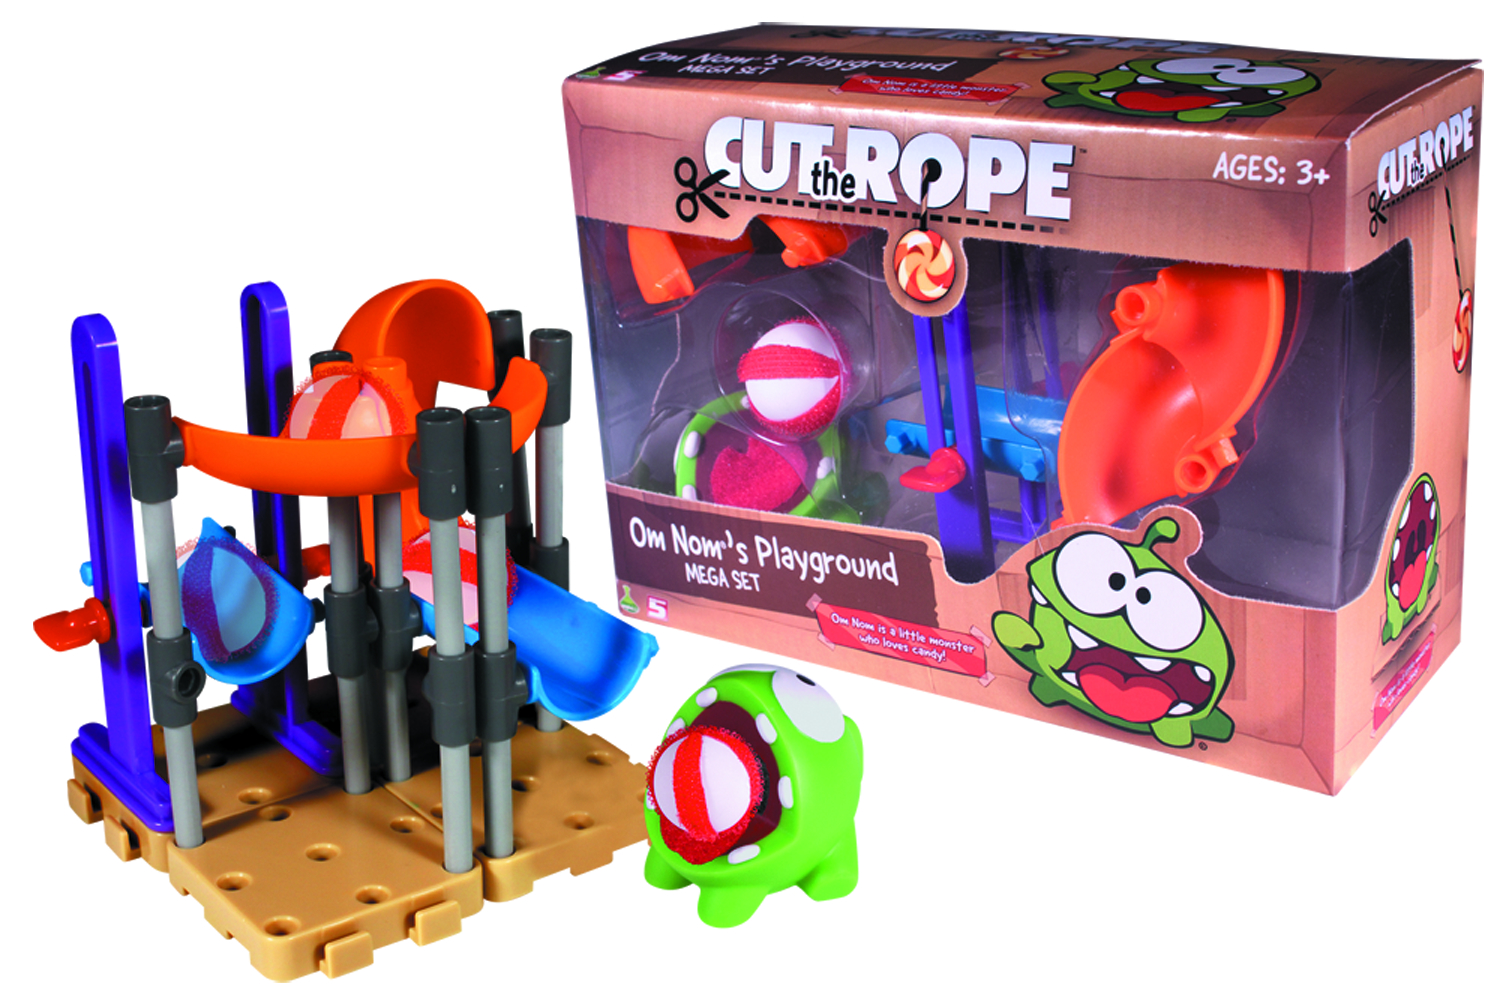 CUT THE ROPE OM NOM PLAYGROUND MEGA SET CS